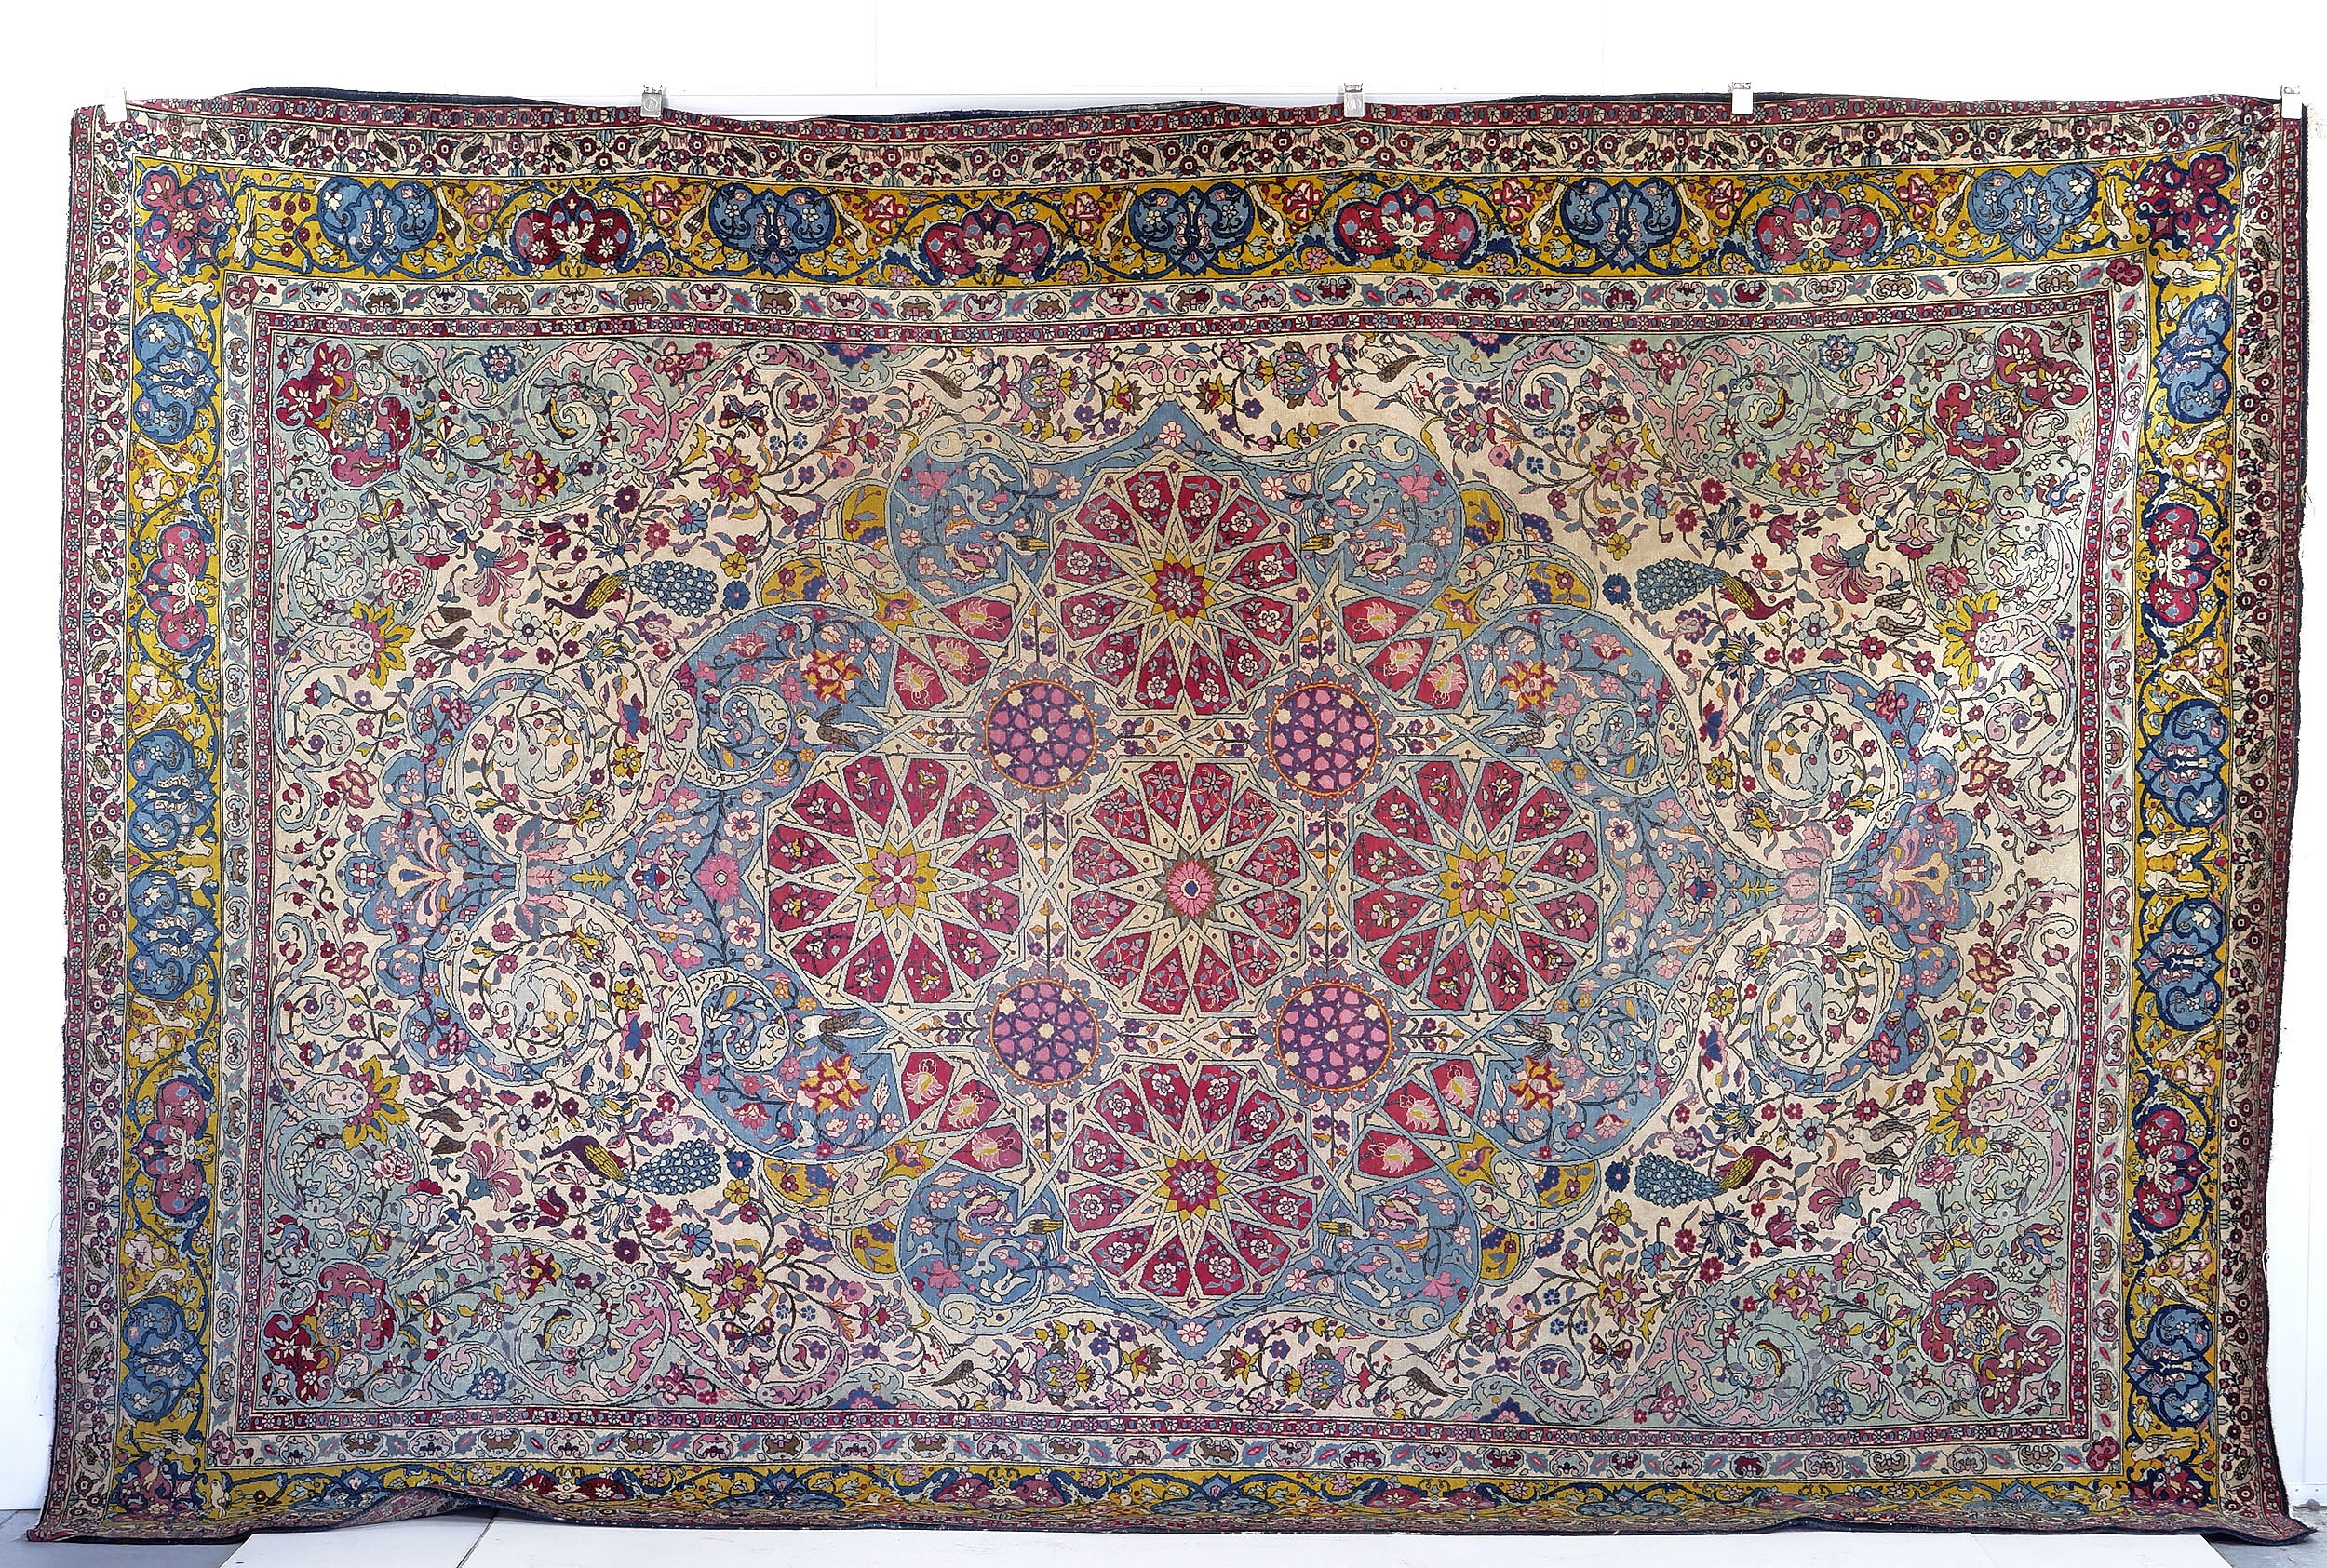 'Magnificent Large Antique Persian Lavar-Kerman Garden of Paradise Hand Knotted Wool Pile Carpet with Central Arabesques Circa 1900'